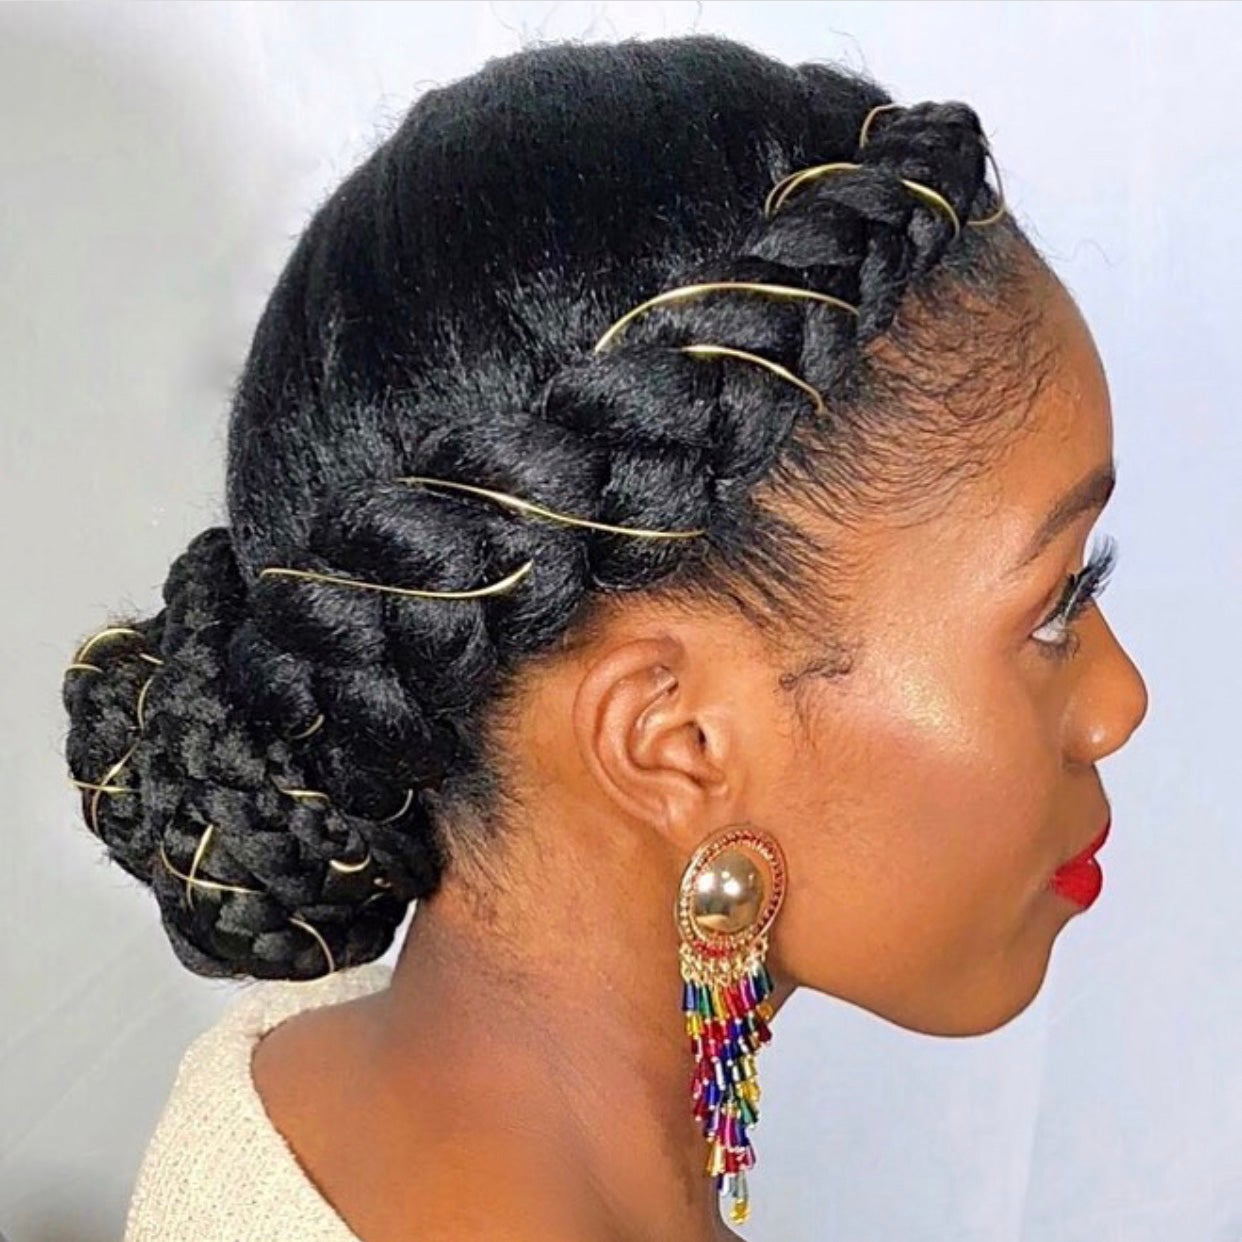 Click to SEE MORE protective styles for natural hair braids latest & easy hairstyles for black women. See updos on medium length to long hair, simple transitioning hairstyles for wedding, also SEE...